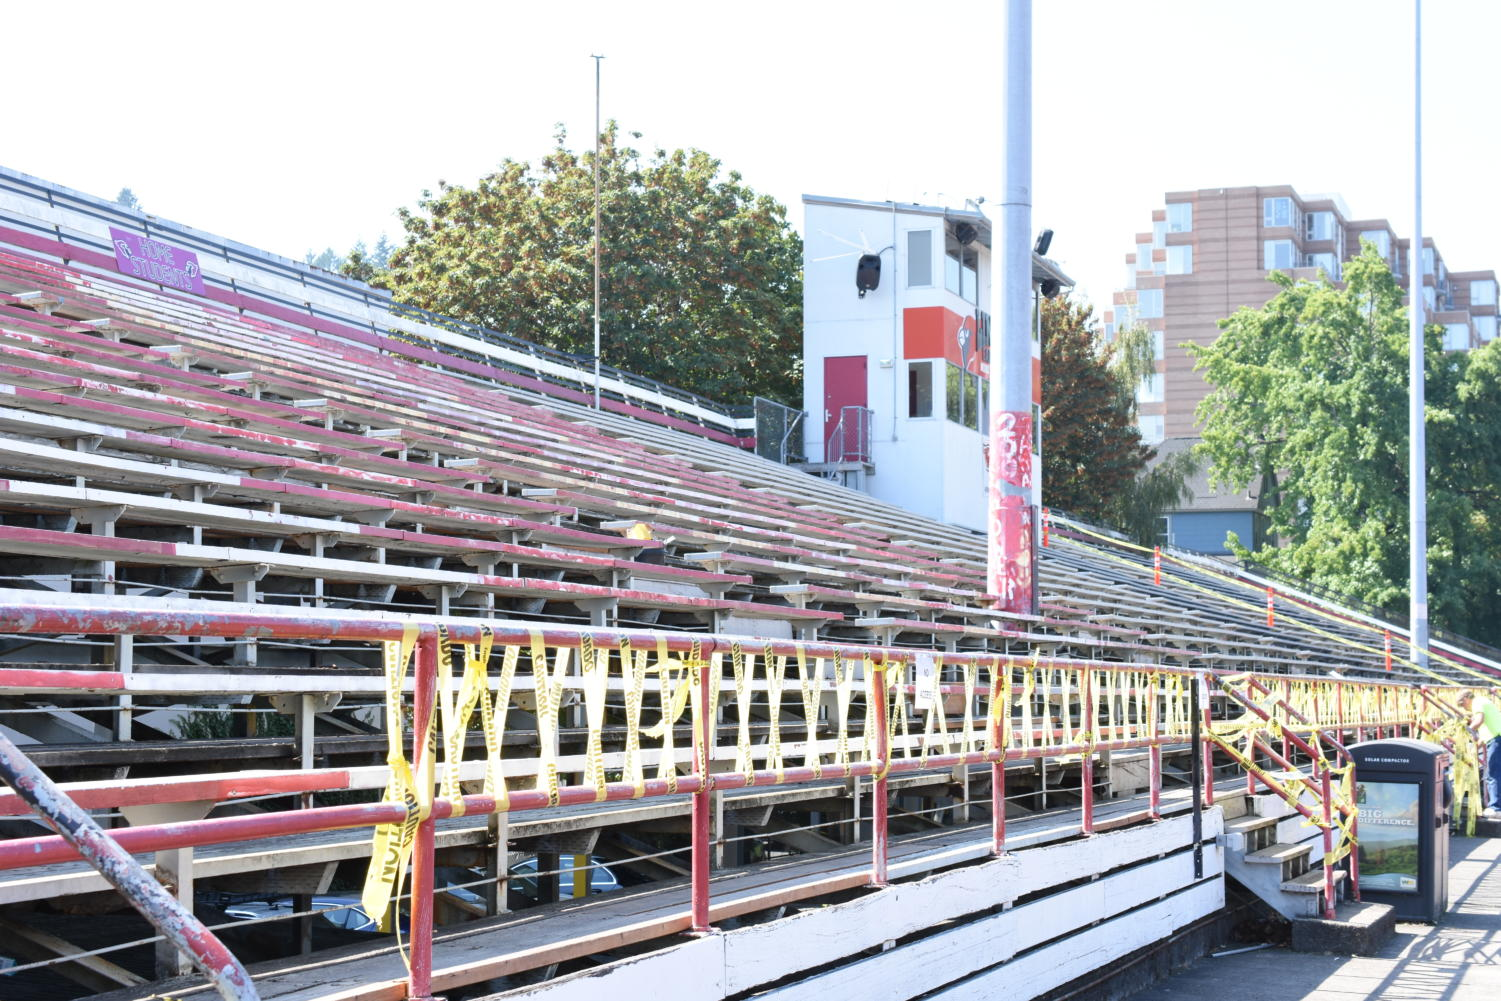 A large section of bleachers are blocked off by yellow caution tape. The bleachers will likely not be rebuilt but the district is making efforts to make them safe for student and spectator use.